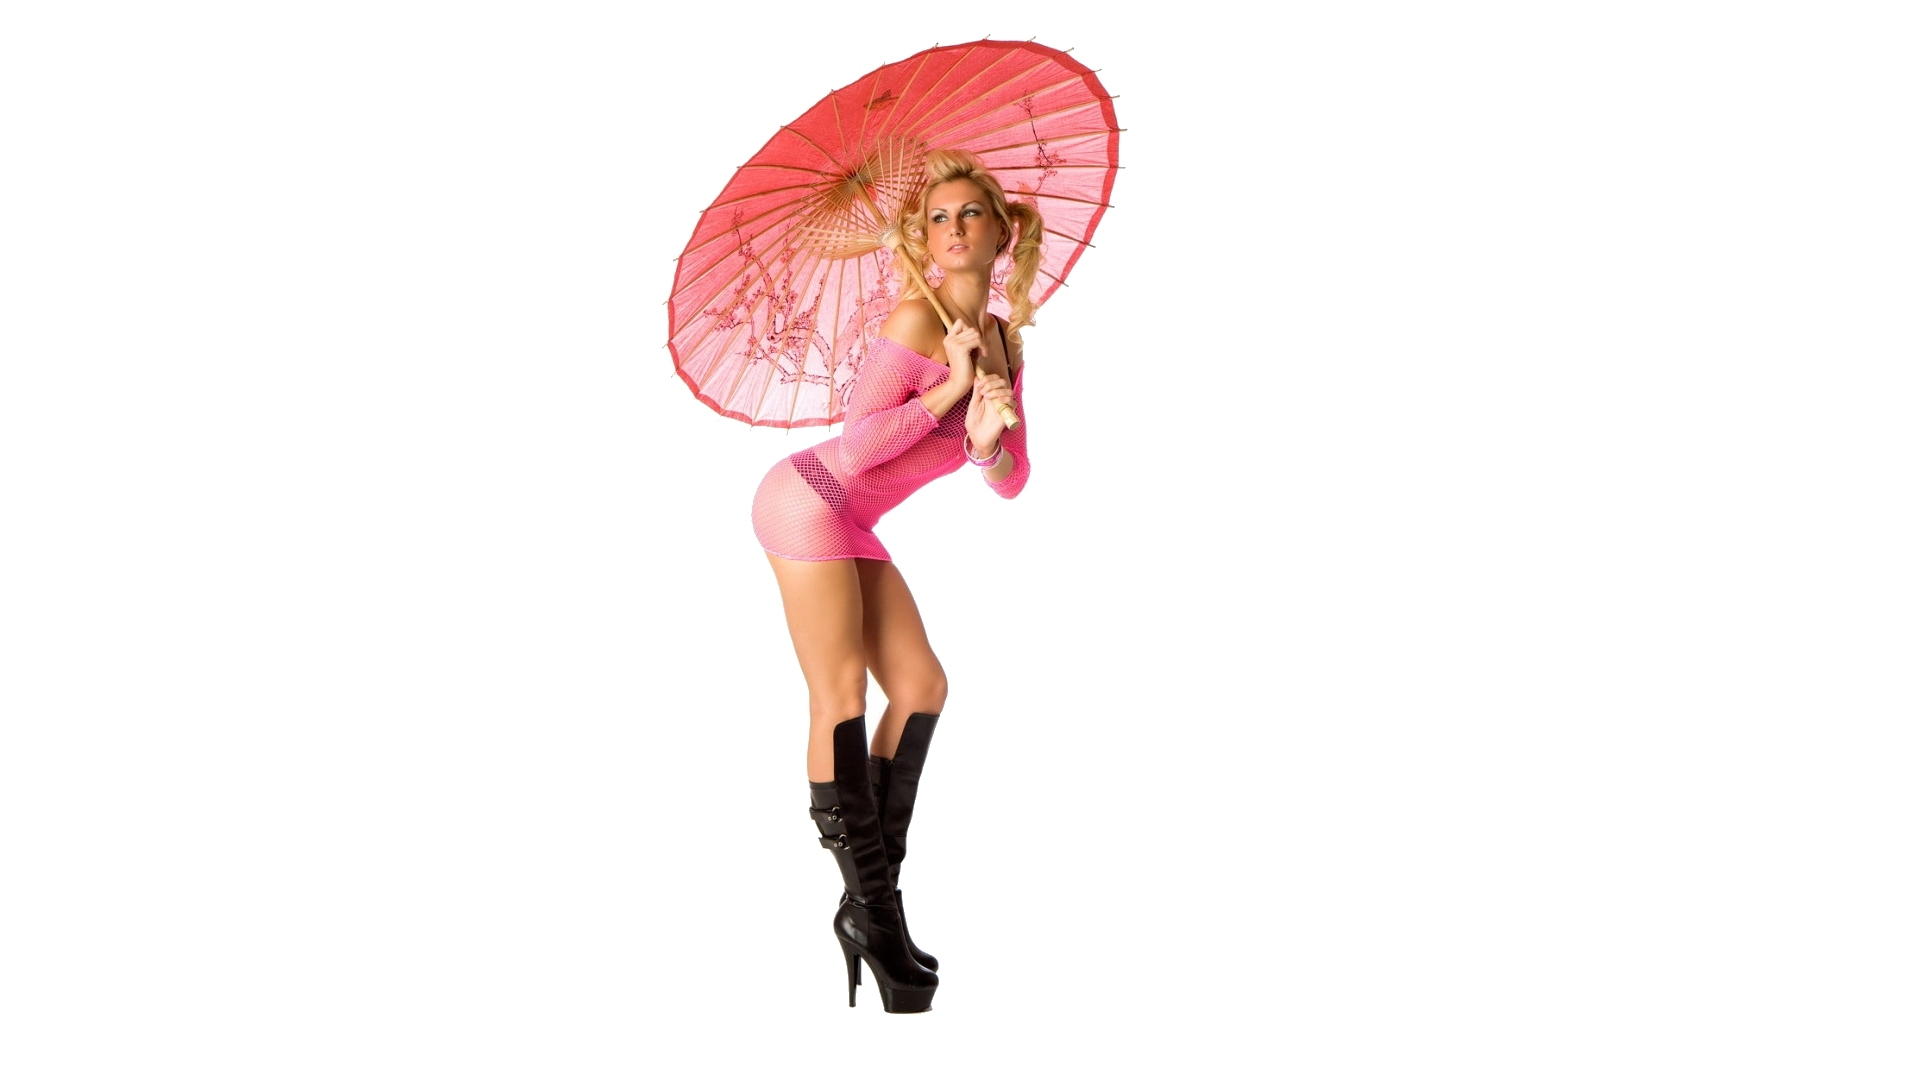 boots pink pinups Umbrellas HD Wallpaper